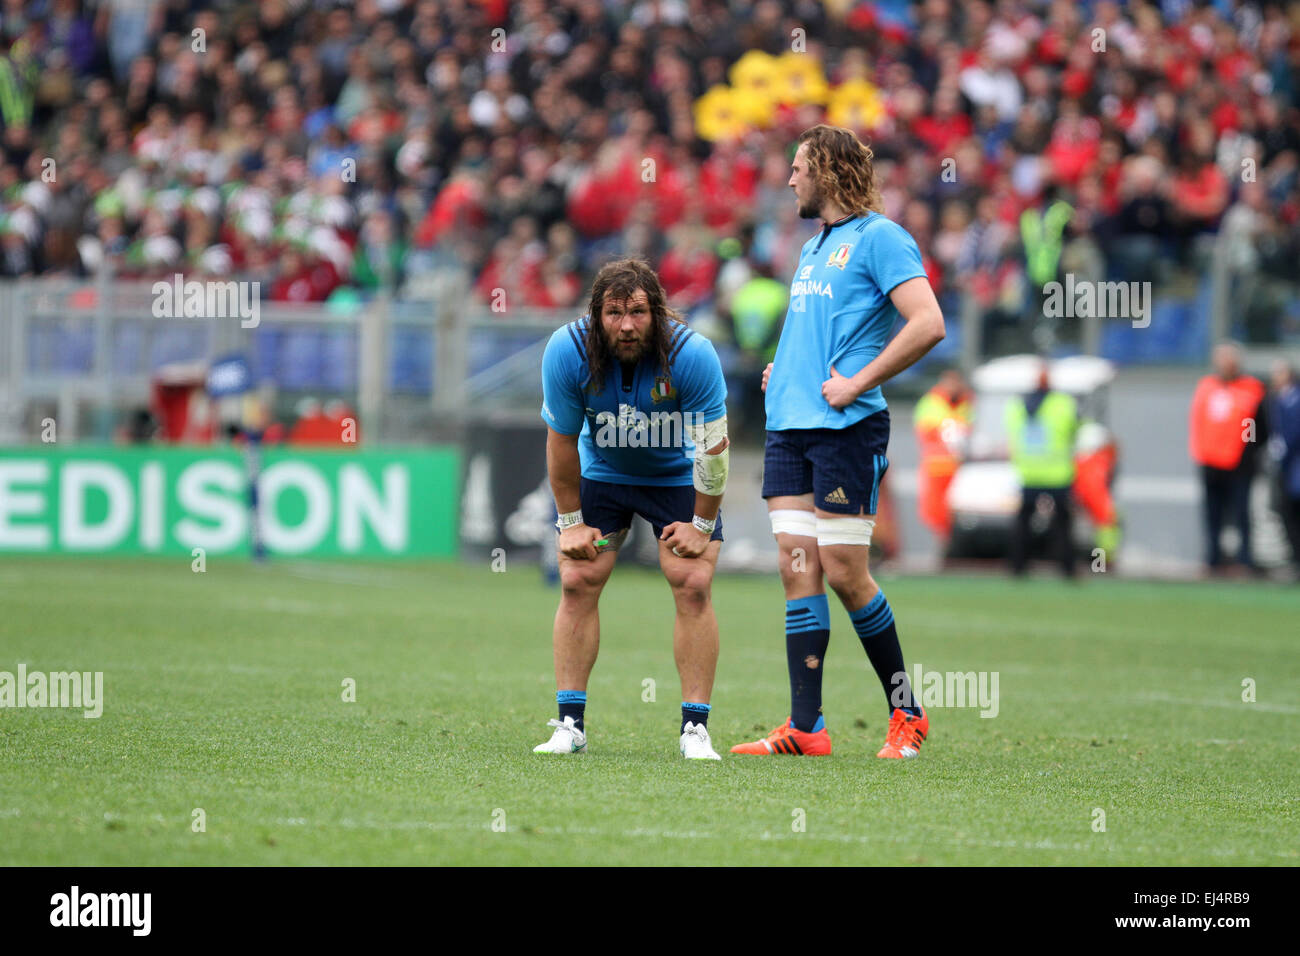 Rome, Italy. 21st March, 2015. Martin Castrogiovanni (Italy) and Joshua Furno (Italy) reacts during the Six Nations - Stock Image